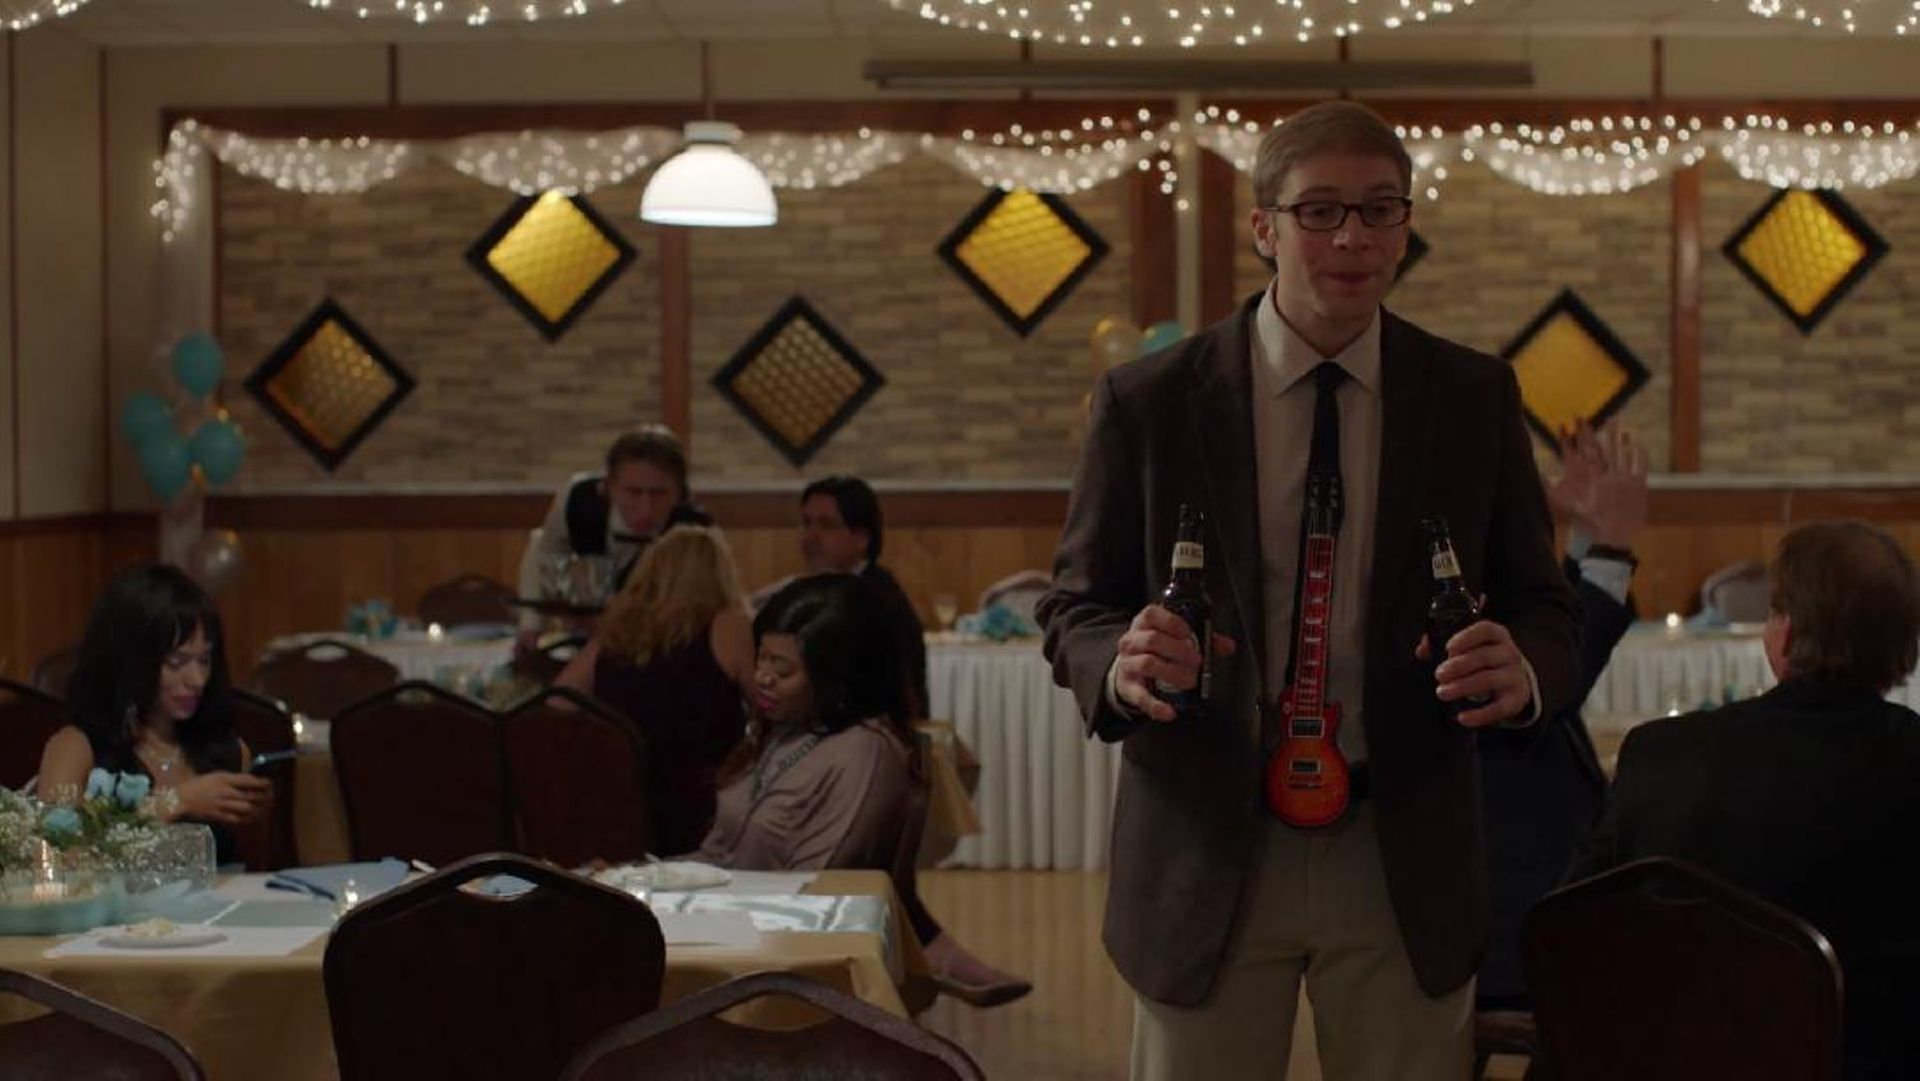 Joe Pera Talks With You - Joe Pera On 'Dance'